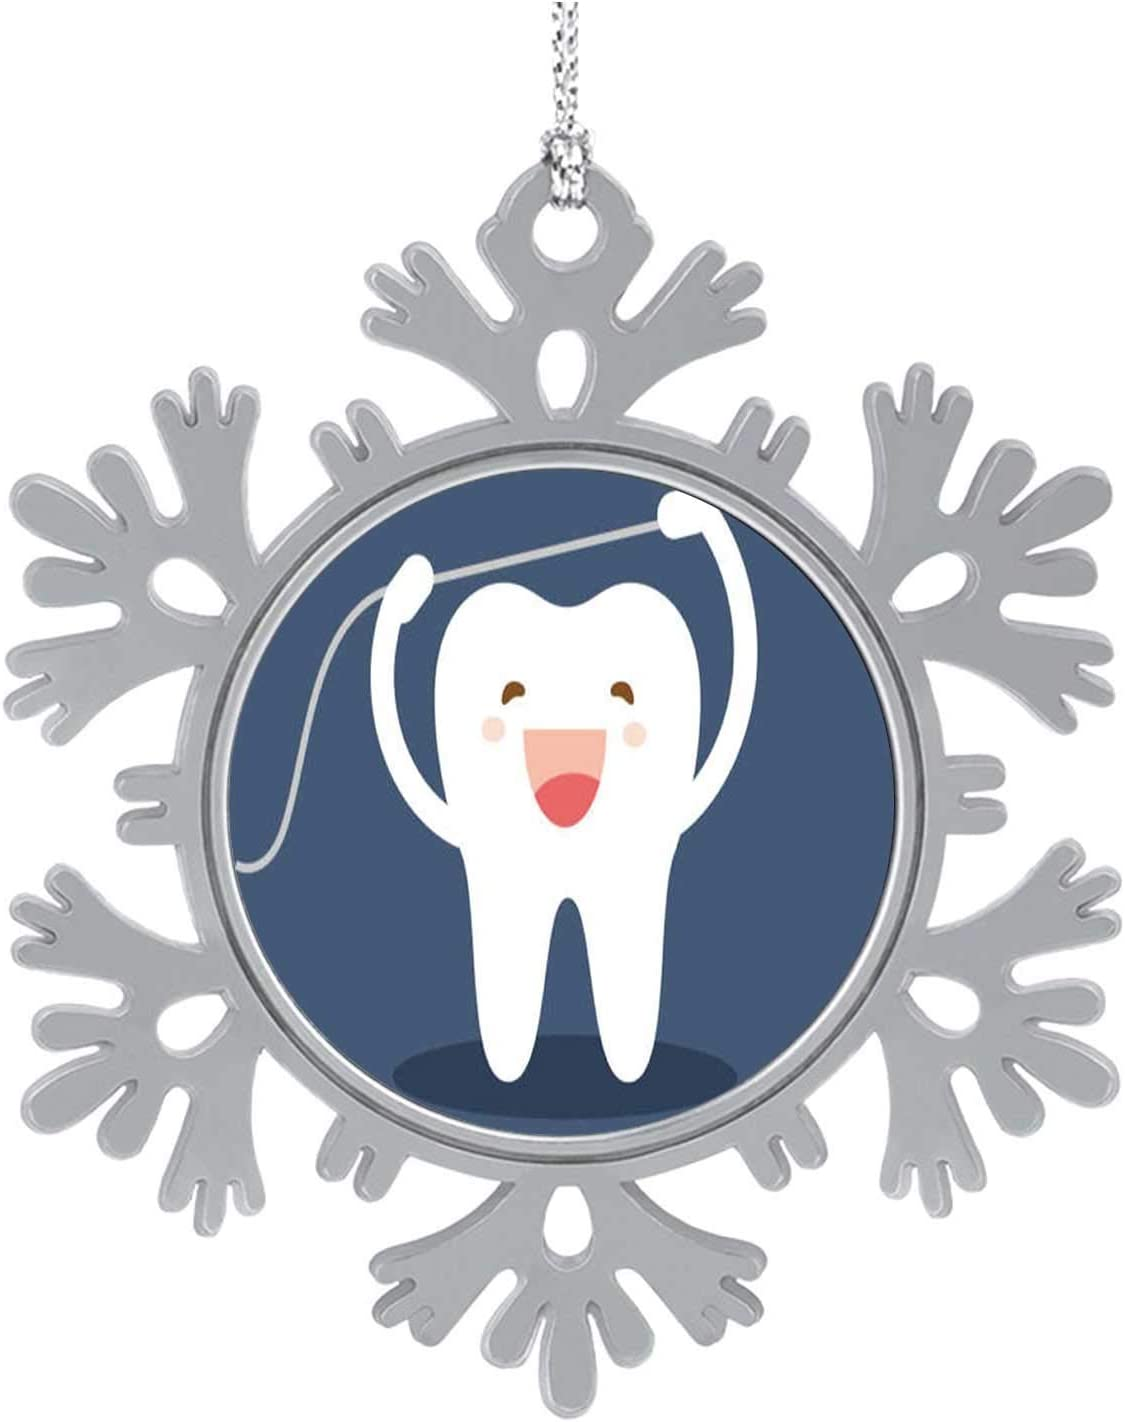 Happy tooth icon.Cute characters.Brushing teeth flossing.Dental personage-.Oral hygiene,Hanging Ornament Decoration Kit,Hanging for Xmas Holiday Party Decor teeth cleaning.Flat - on the theme